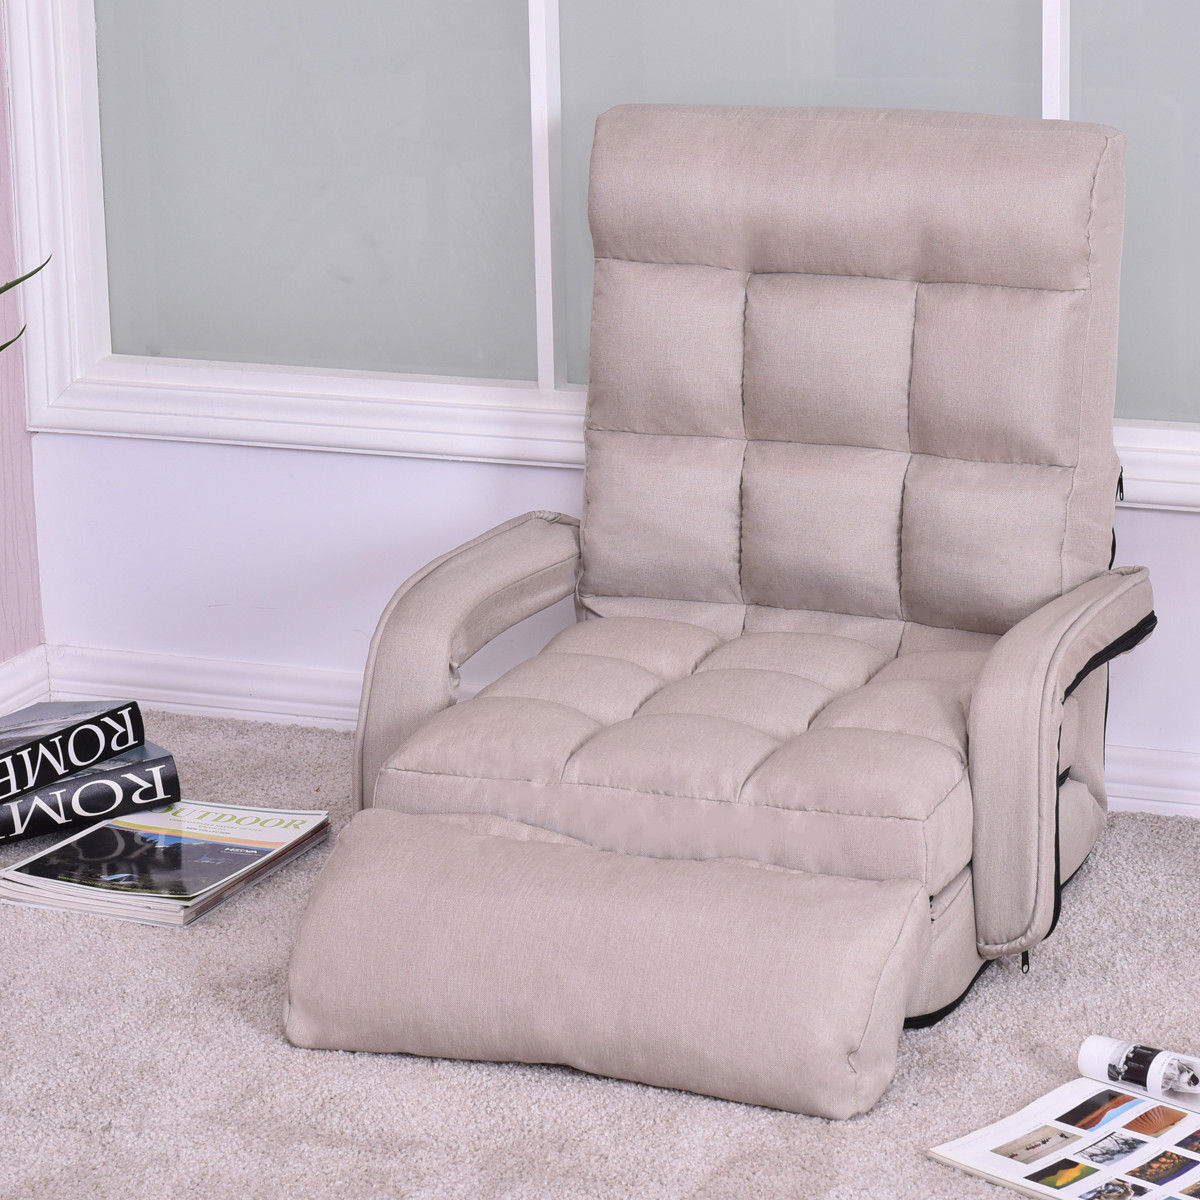 Costway Folding Lazy Sofa Lounger Bed Floor Chair Sofa With Armrests And  Pillow,Beige ,